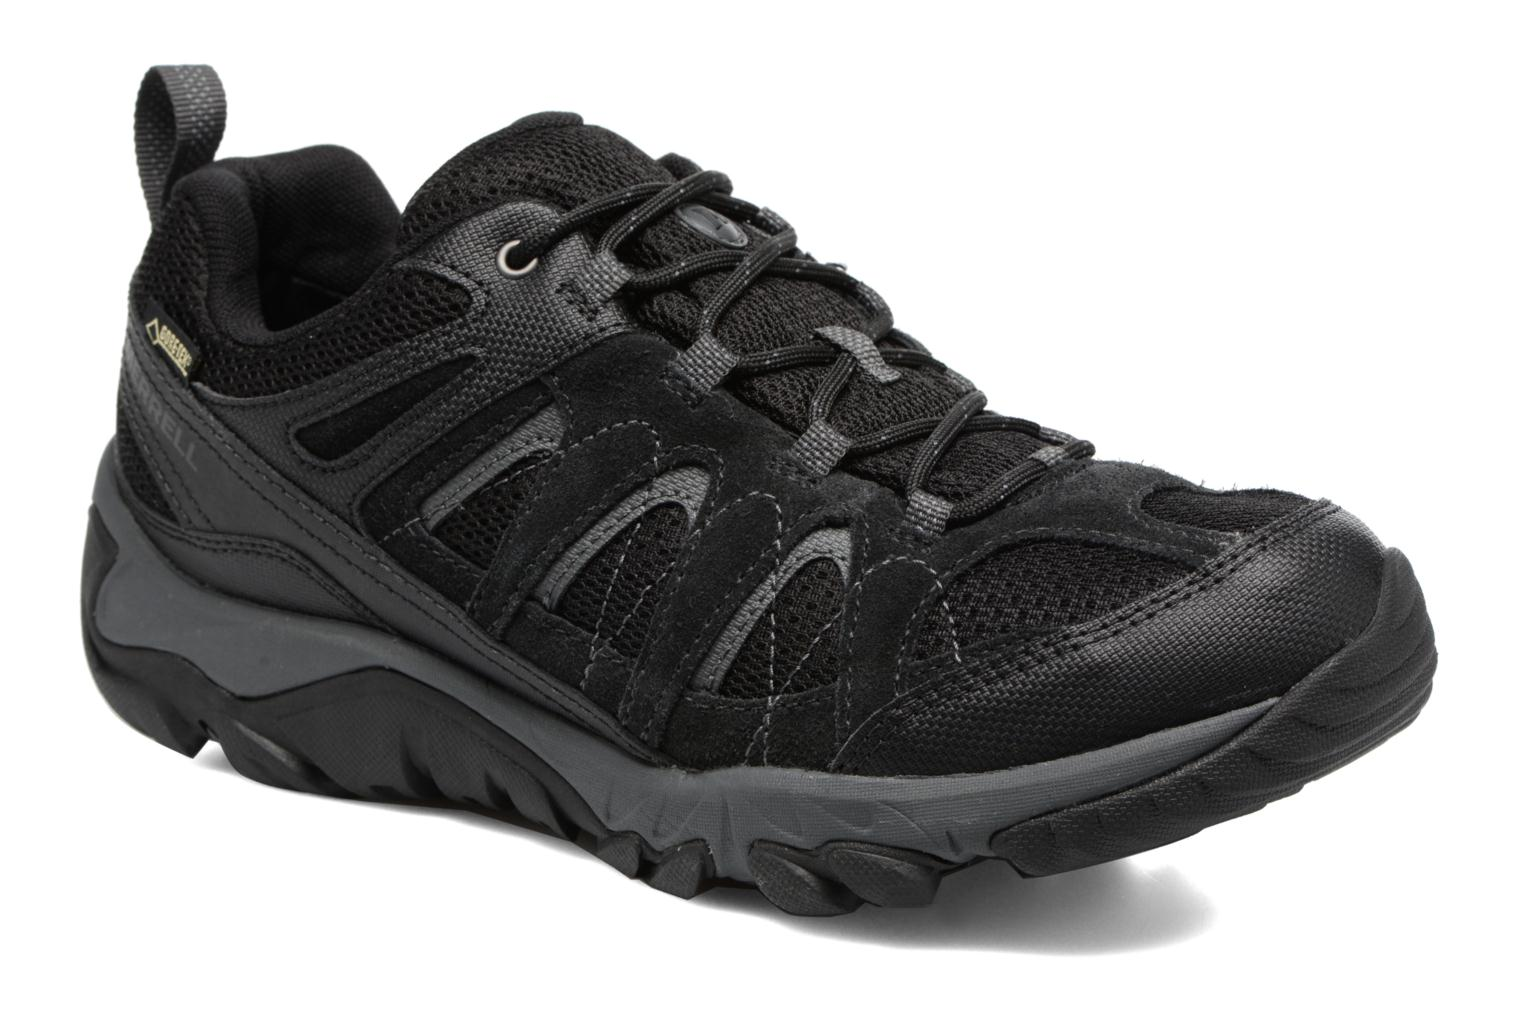 Outmost Vent Gtx Black